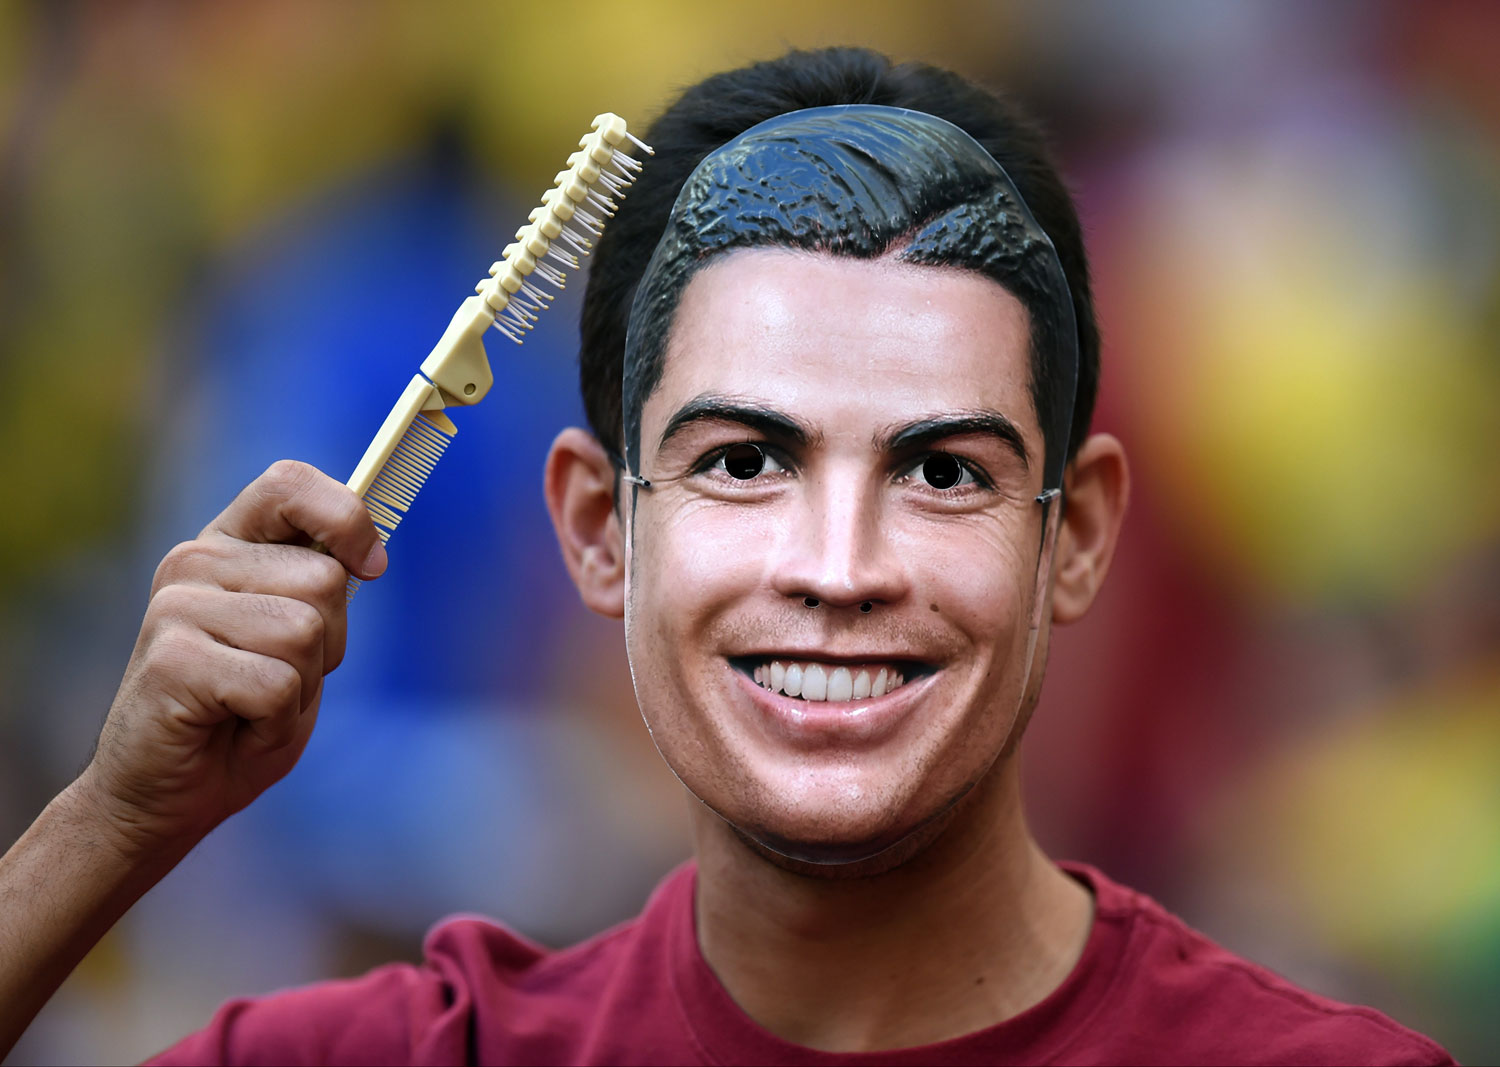 A Portugal supporter wears a Ronaldo mask before the match between Portugal and Ghana at the Estadio Nacional in Brasilia, Brazil on June 26, 2014.